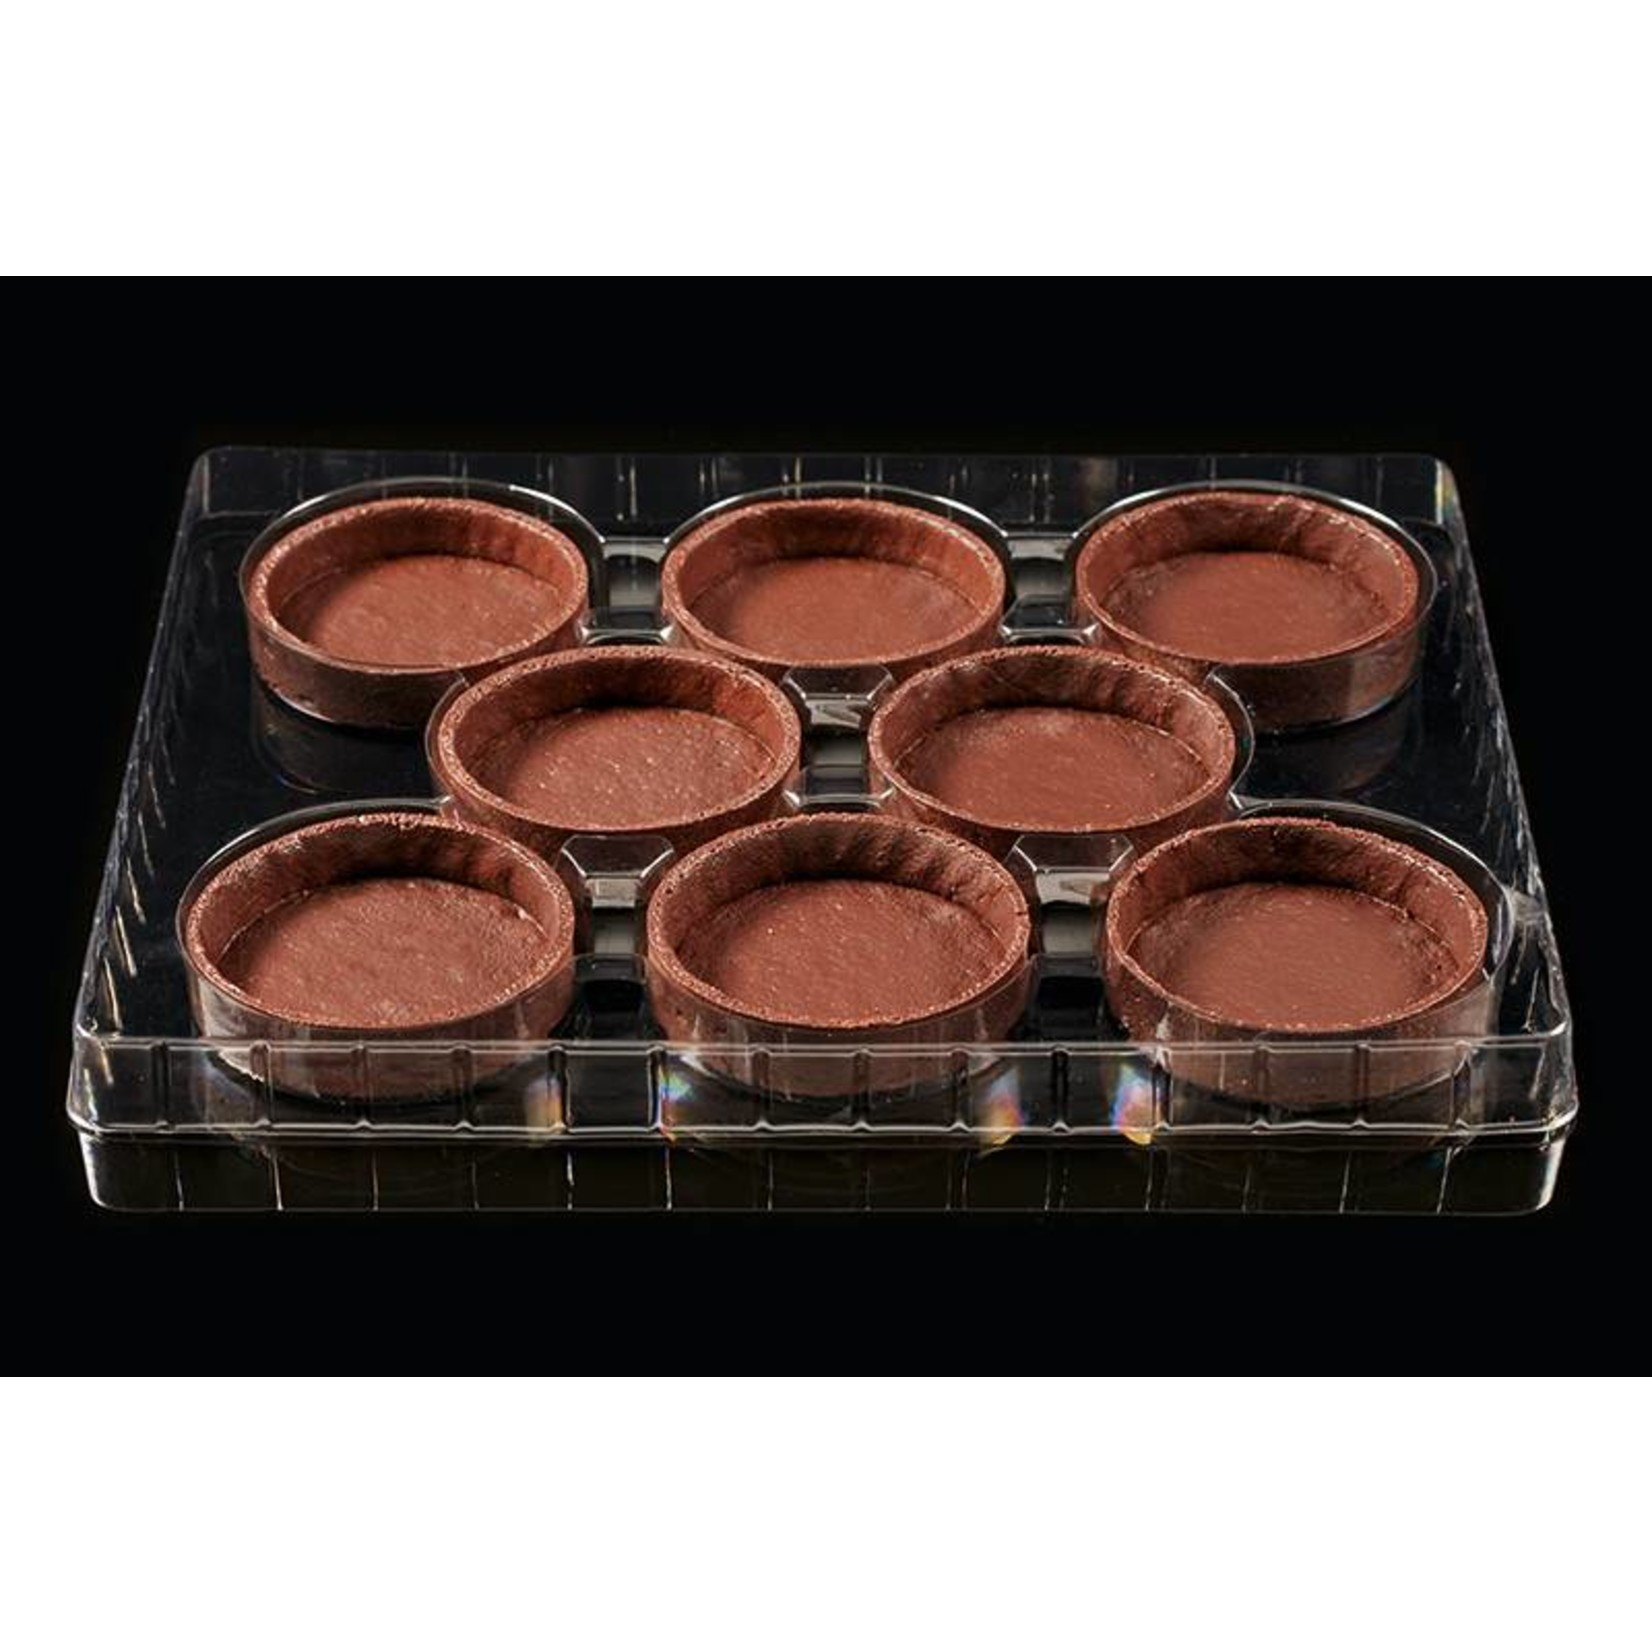 Delifrance Delifrance - Tart shell, Chocolate round - 4'' (8ct) sleeve, 78450-S